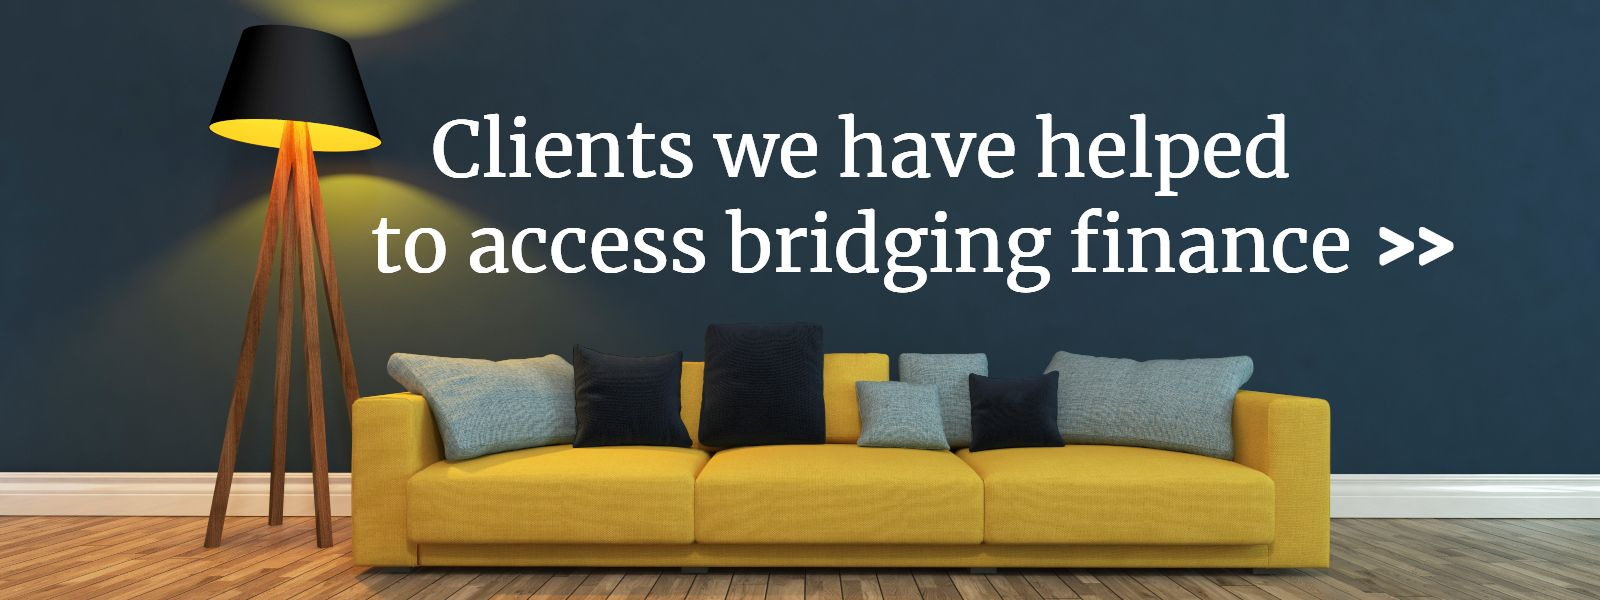 Case studies of Clifton Private Finance's bridging loan clients